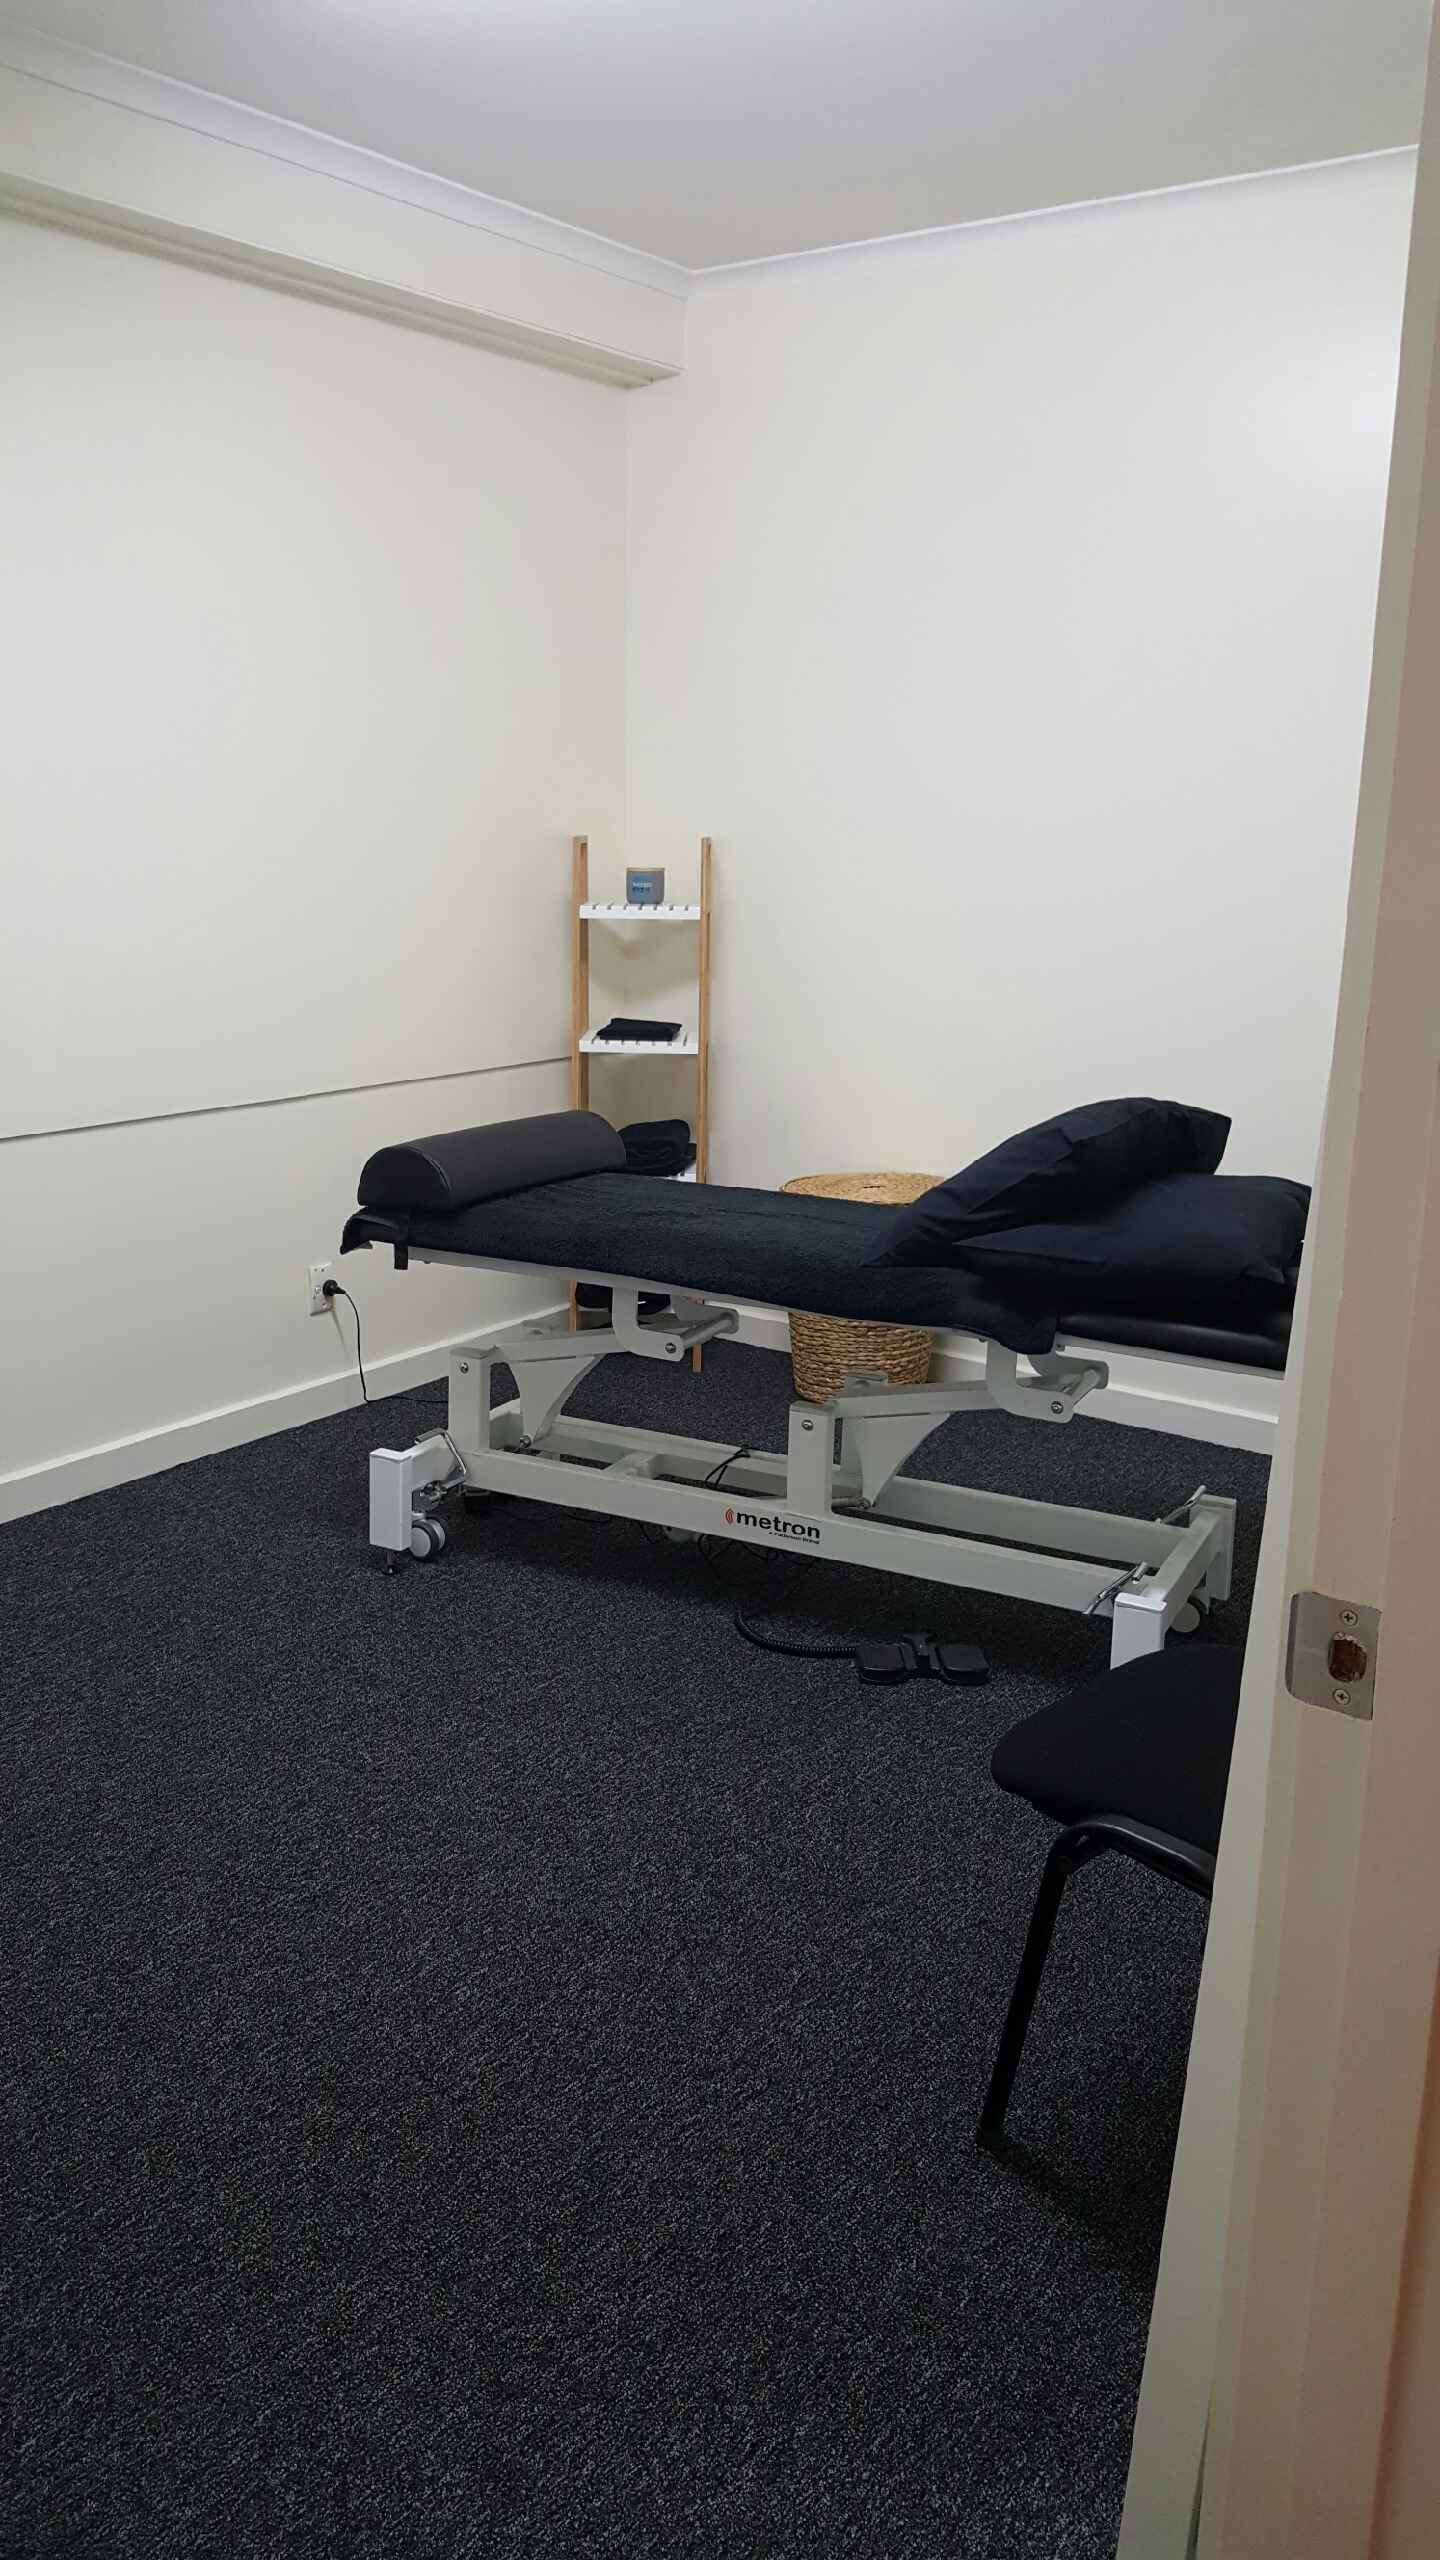 Massage room to suit masseuse or allied health professional at